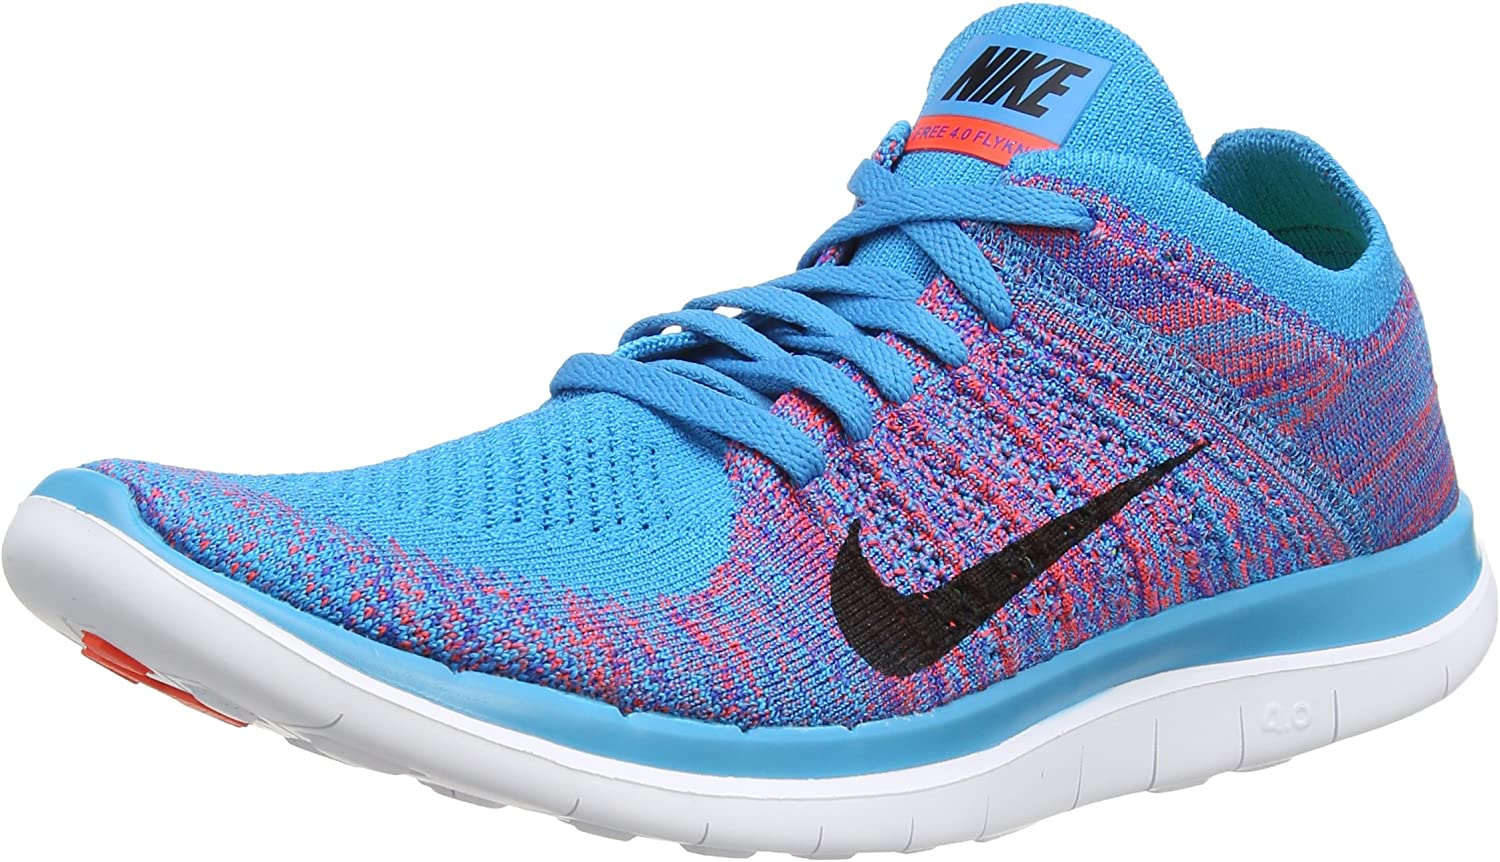 Acción de gracias donante argumento  Nike Free 4.0 Flyknit, Men's Running Shoes, (Blue Lagoon/Bright  Crimson-Game Royal-White), 9.5 UK (44 1/2 EU): Amazon.de: Schuhe &  Handtaschen